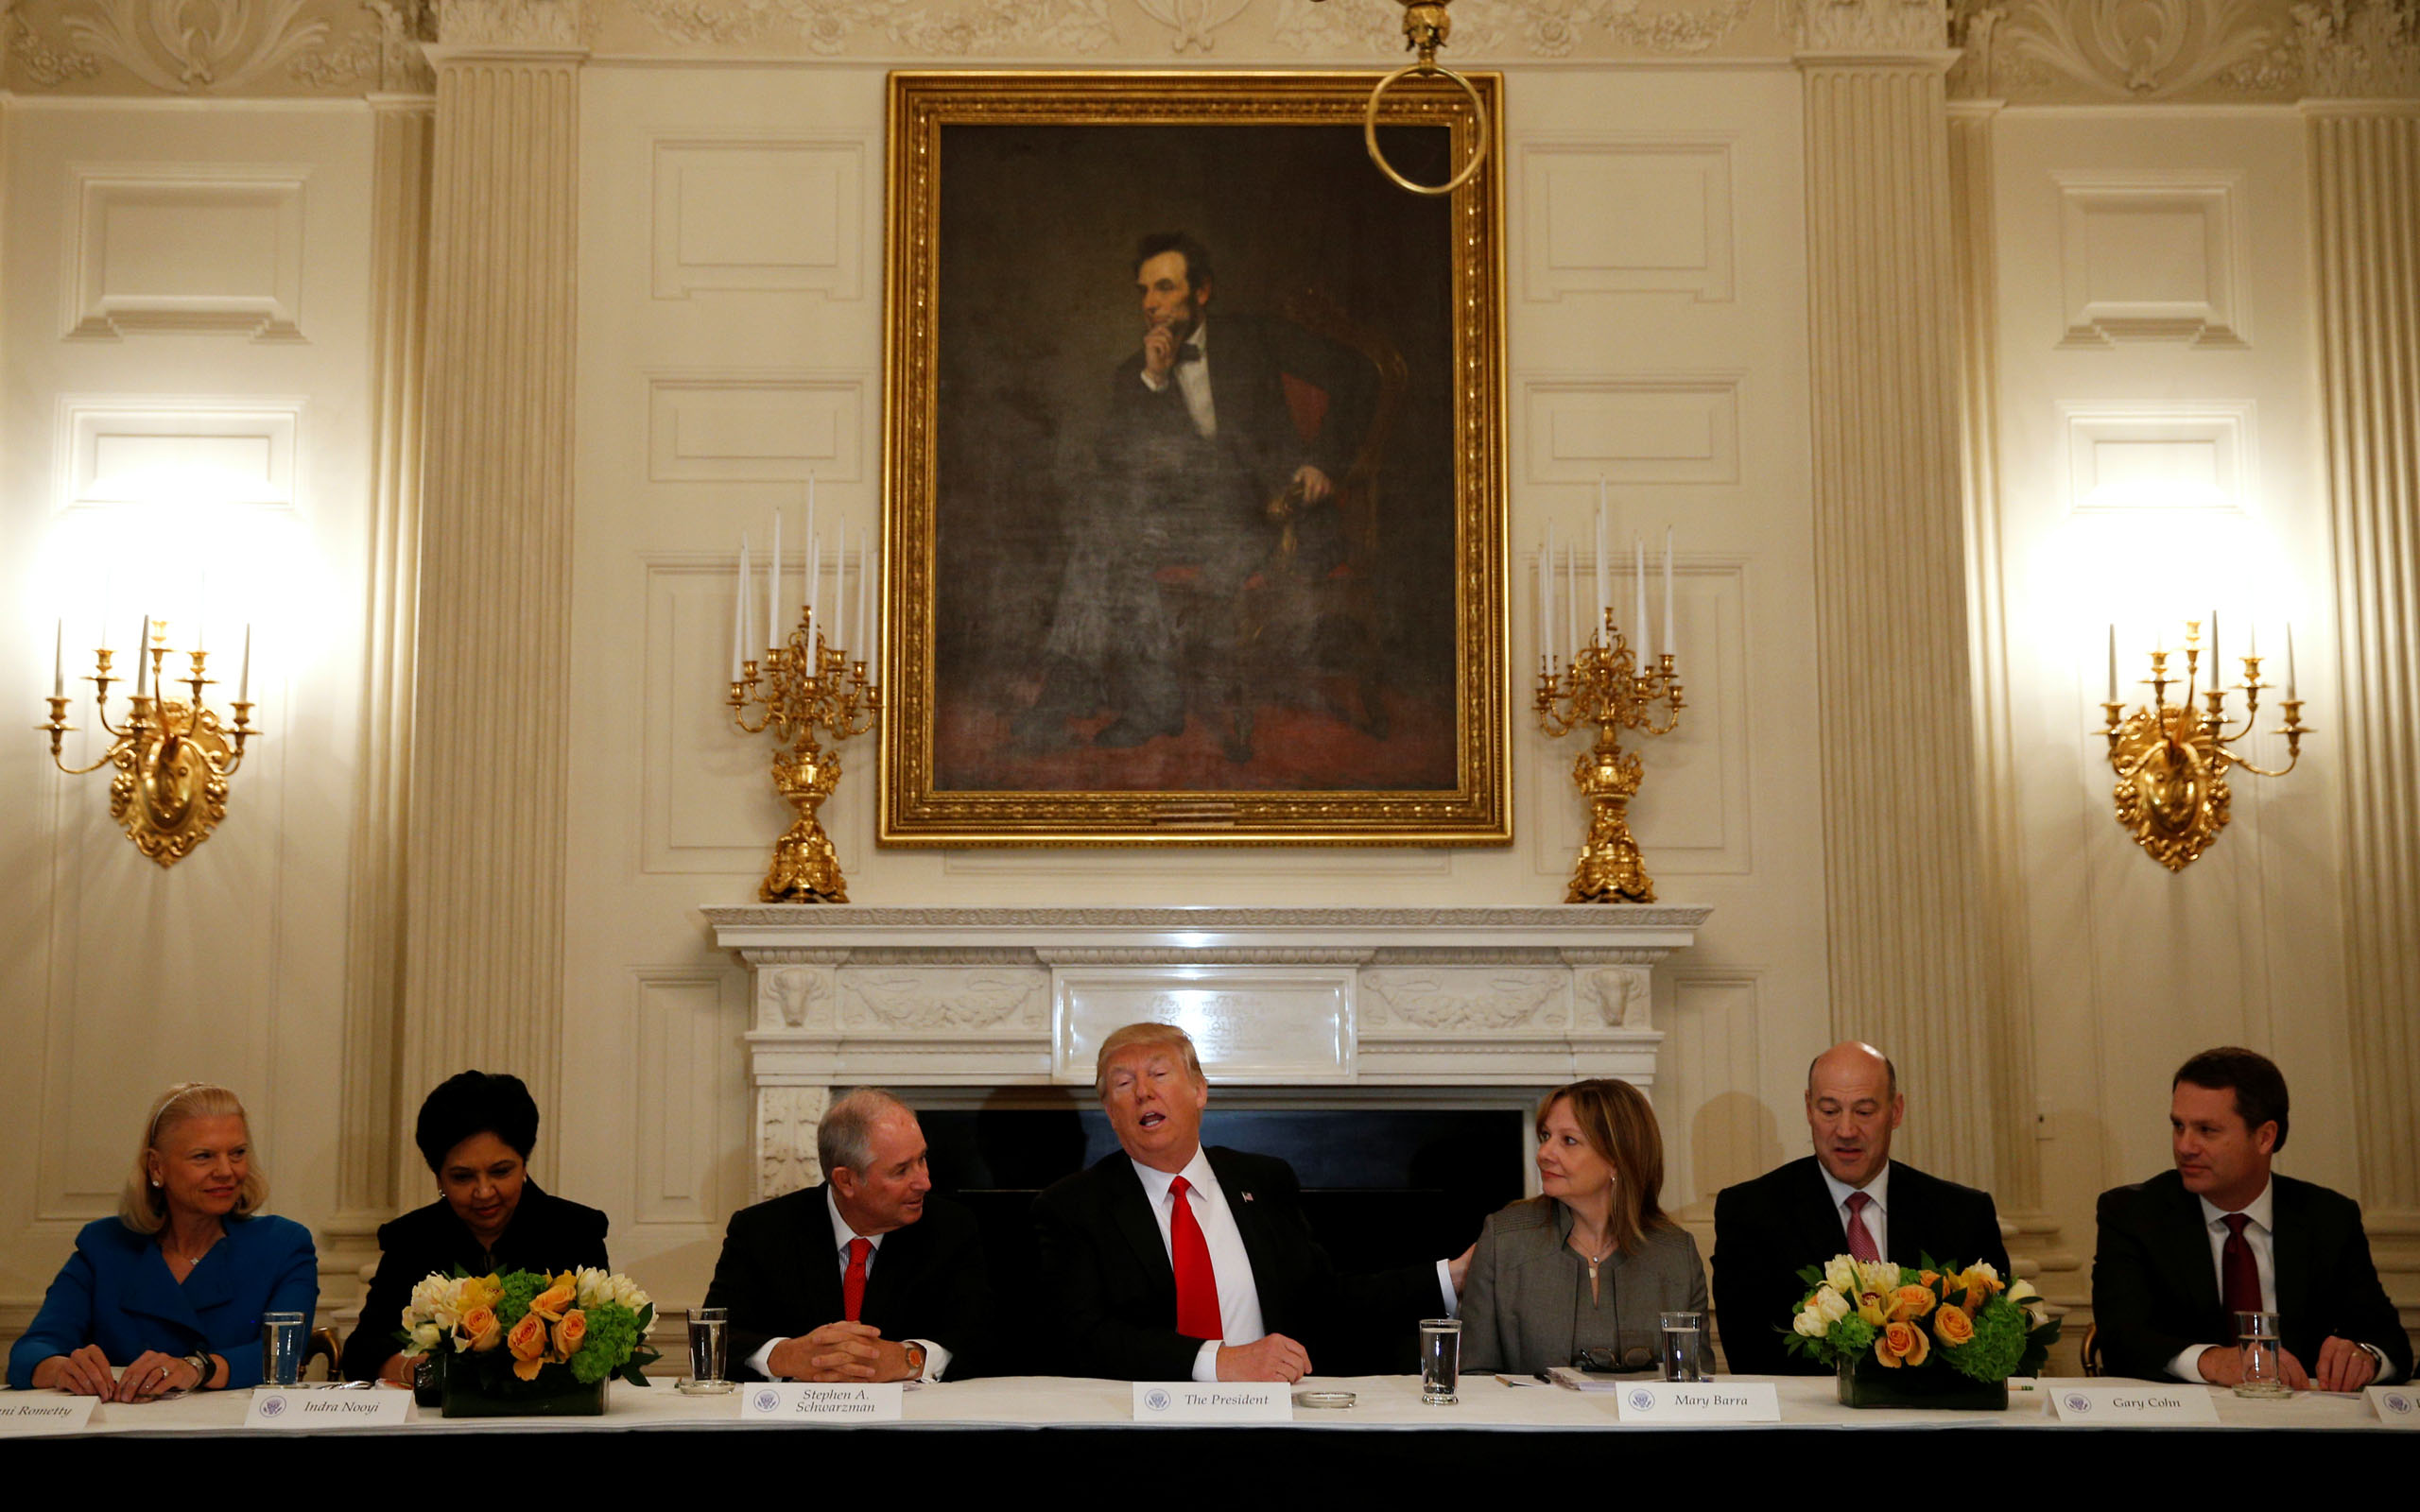 President Donald Trump puts his hand on General Motors CEO Mary Barra while hosting a strategy and policy forum with chief executives of major U.S. companies at the White House in Washington, on Feb. 3, 2017.